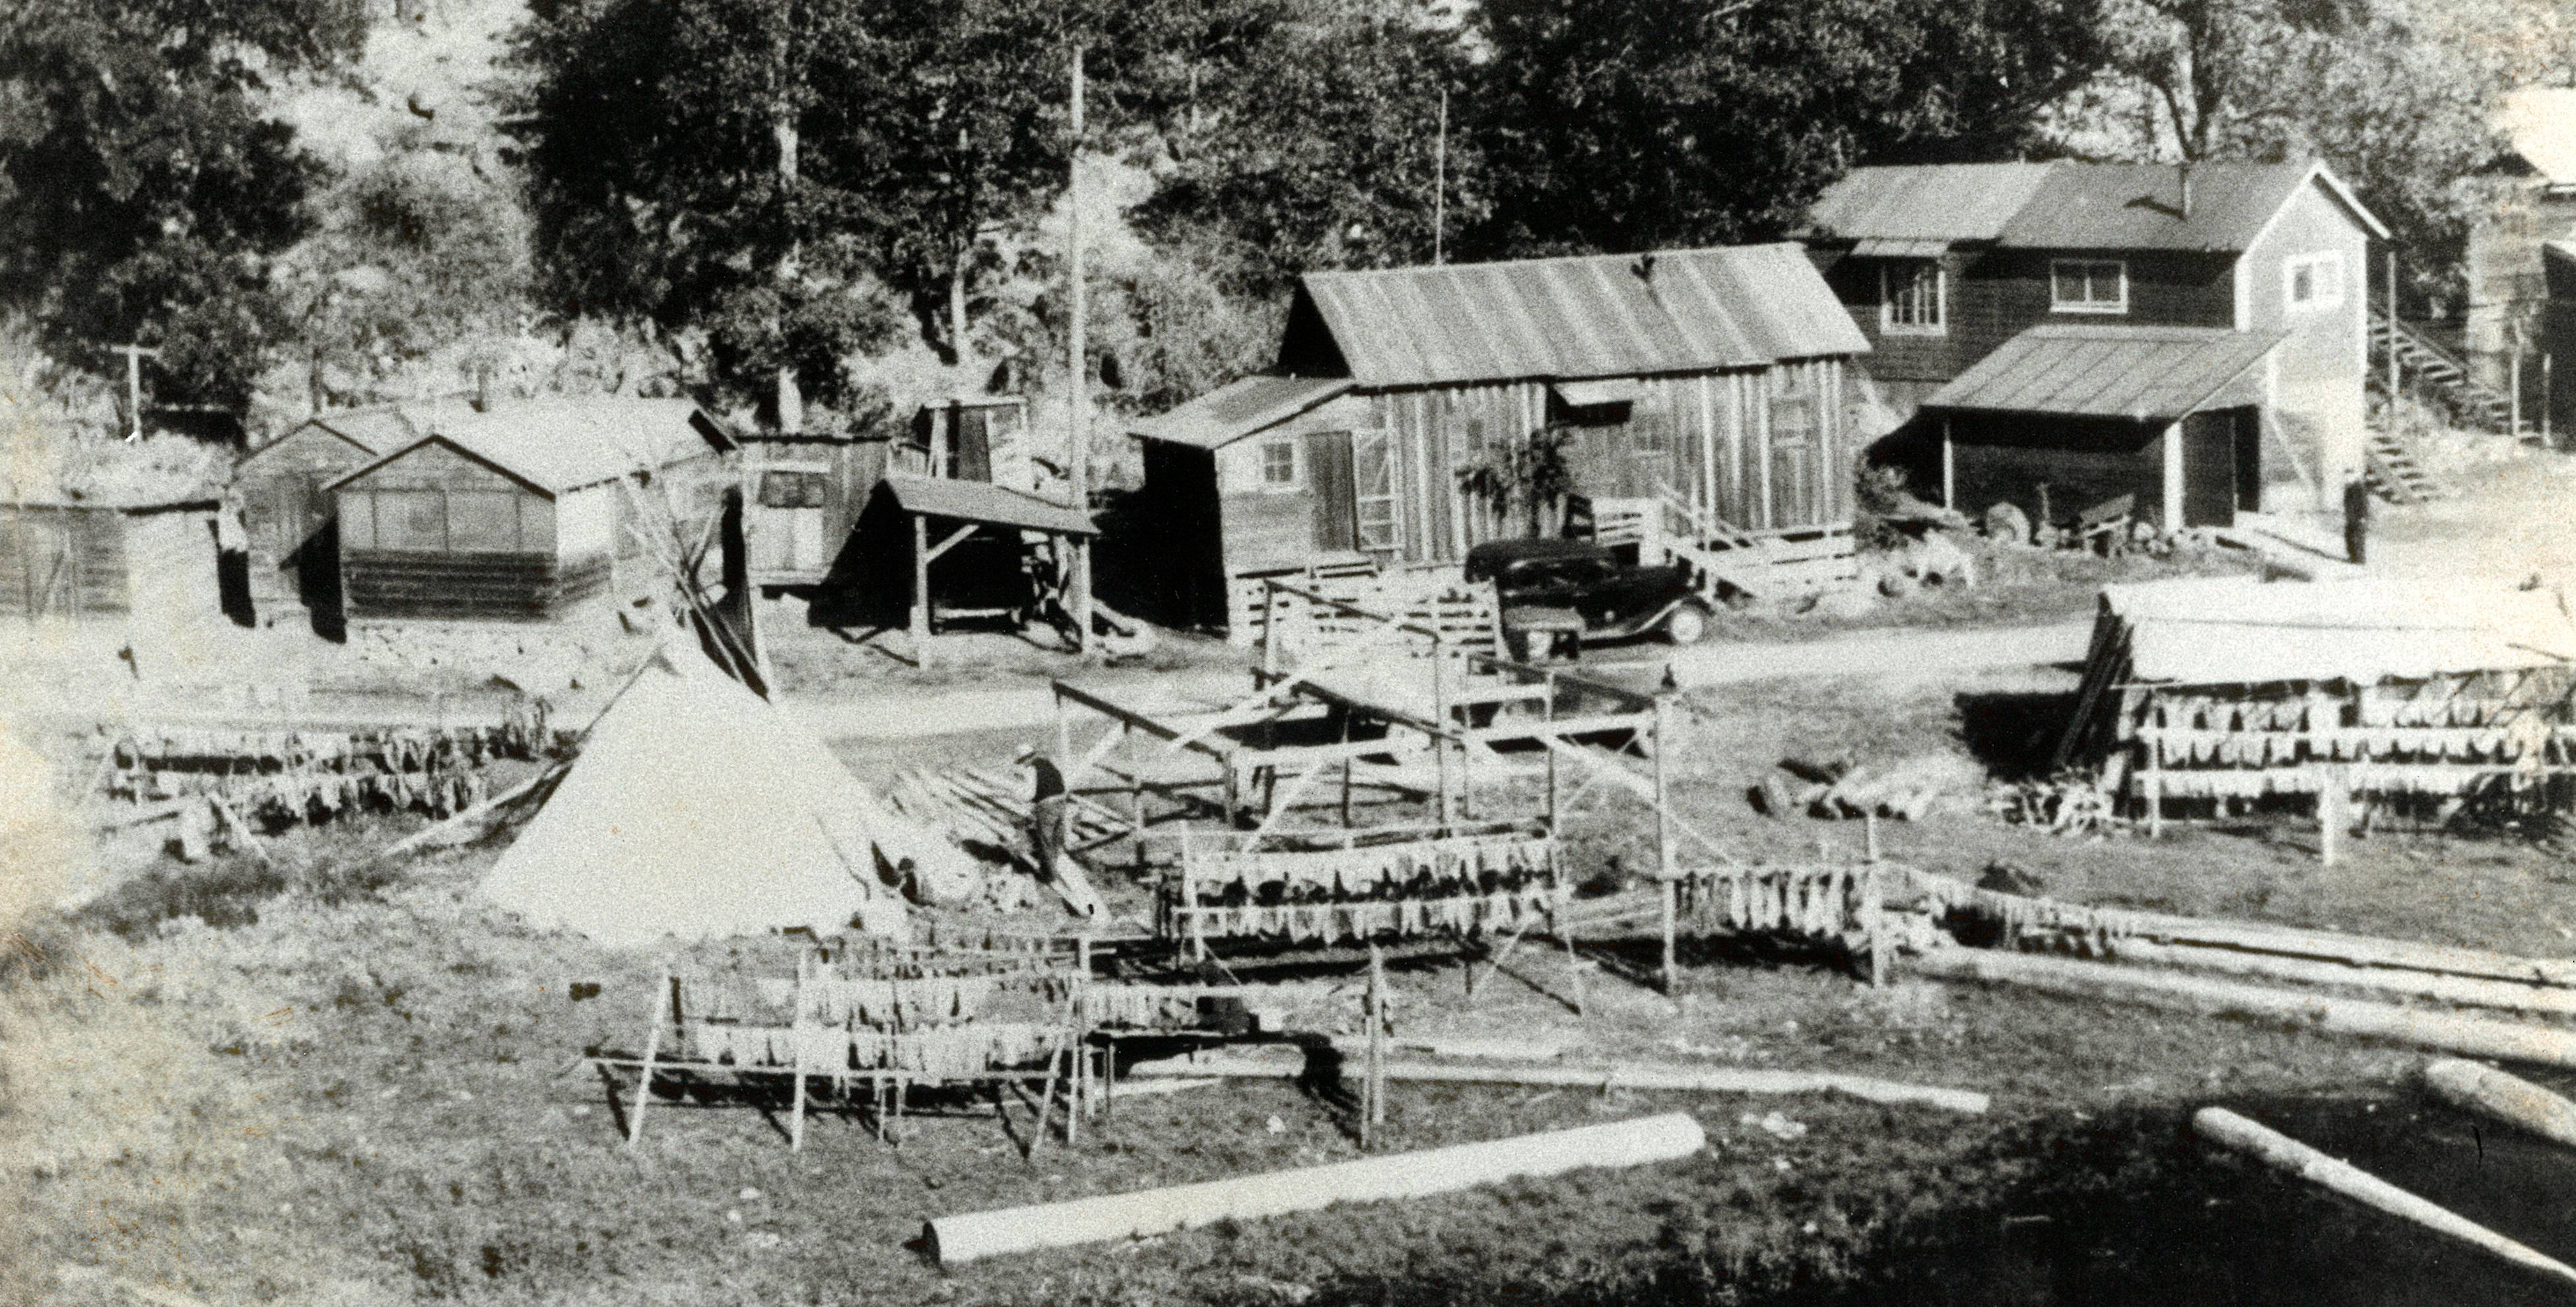 A Native American village at the mouth of the White Salmon River and the Columbia River in Washington state, in the 1930s, before the area was flooded by the Bonneville Dam.